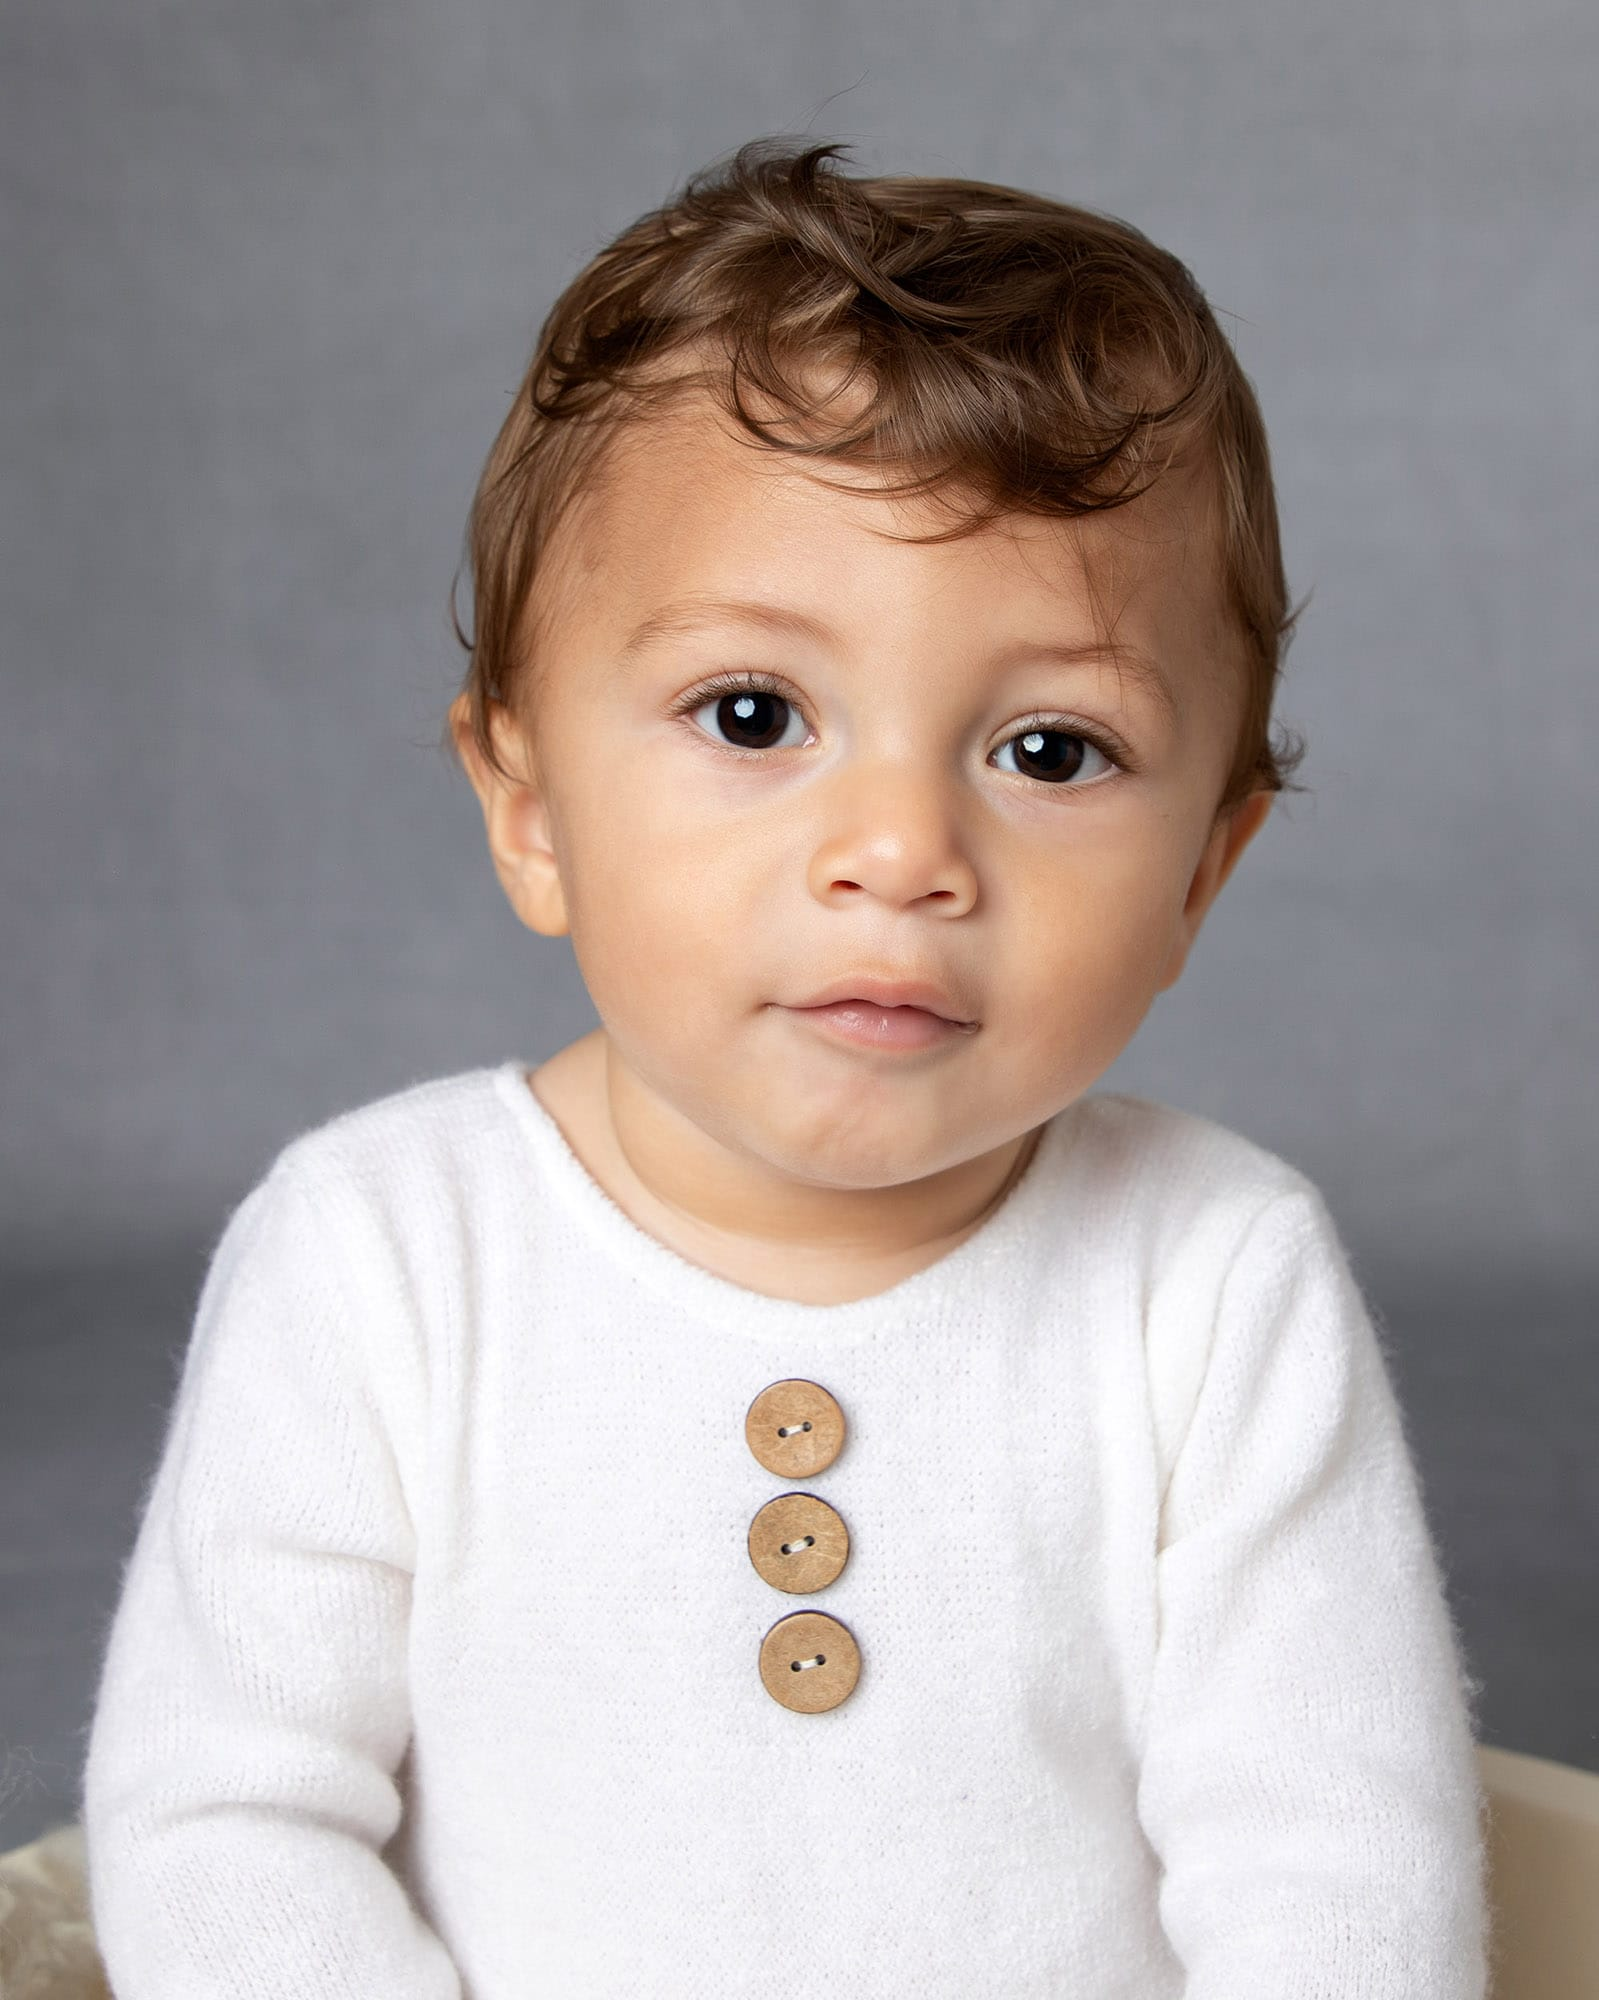 Baby boy portrait at baby photography session